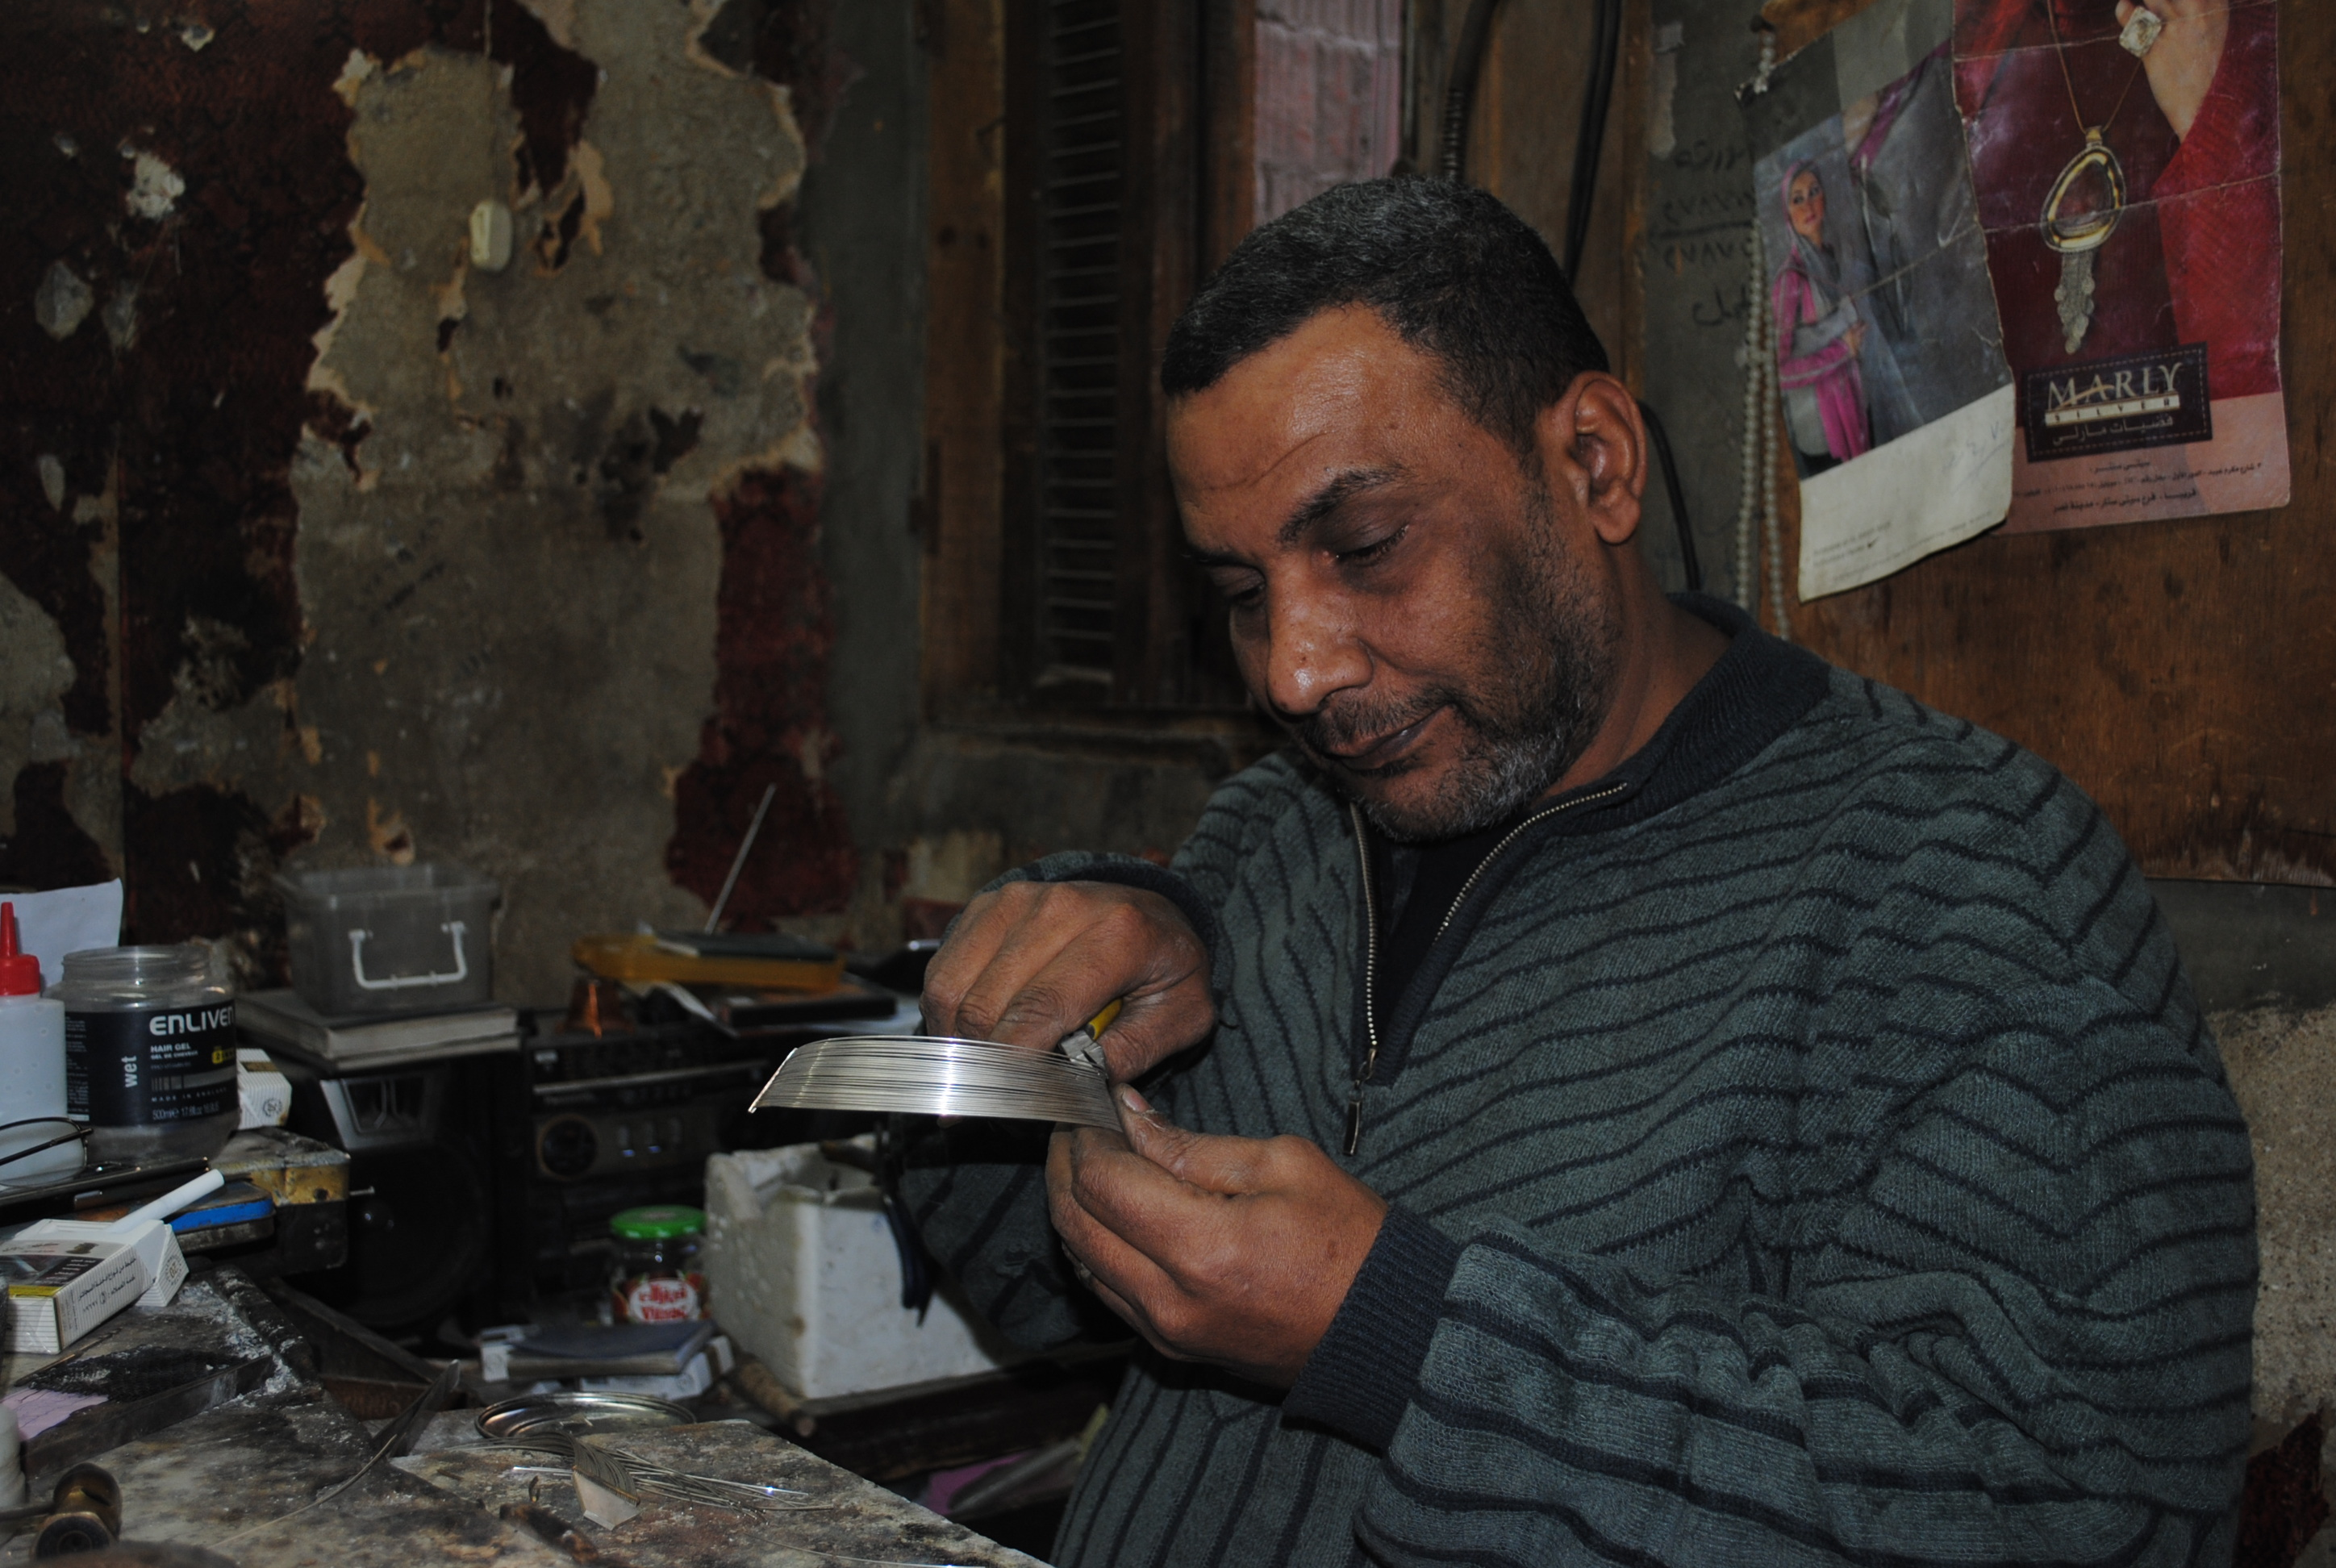 Ghaly Mohamed at work in his workshop (Photo by Abdel-Rahman Sherief)